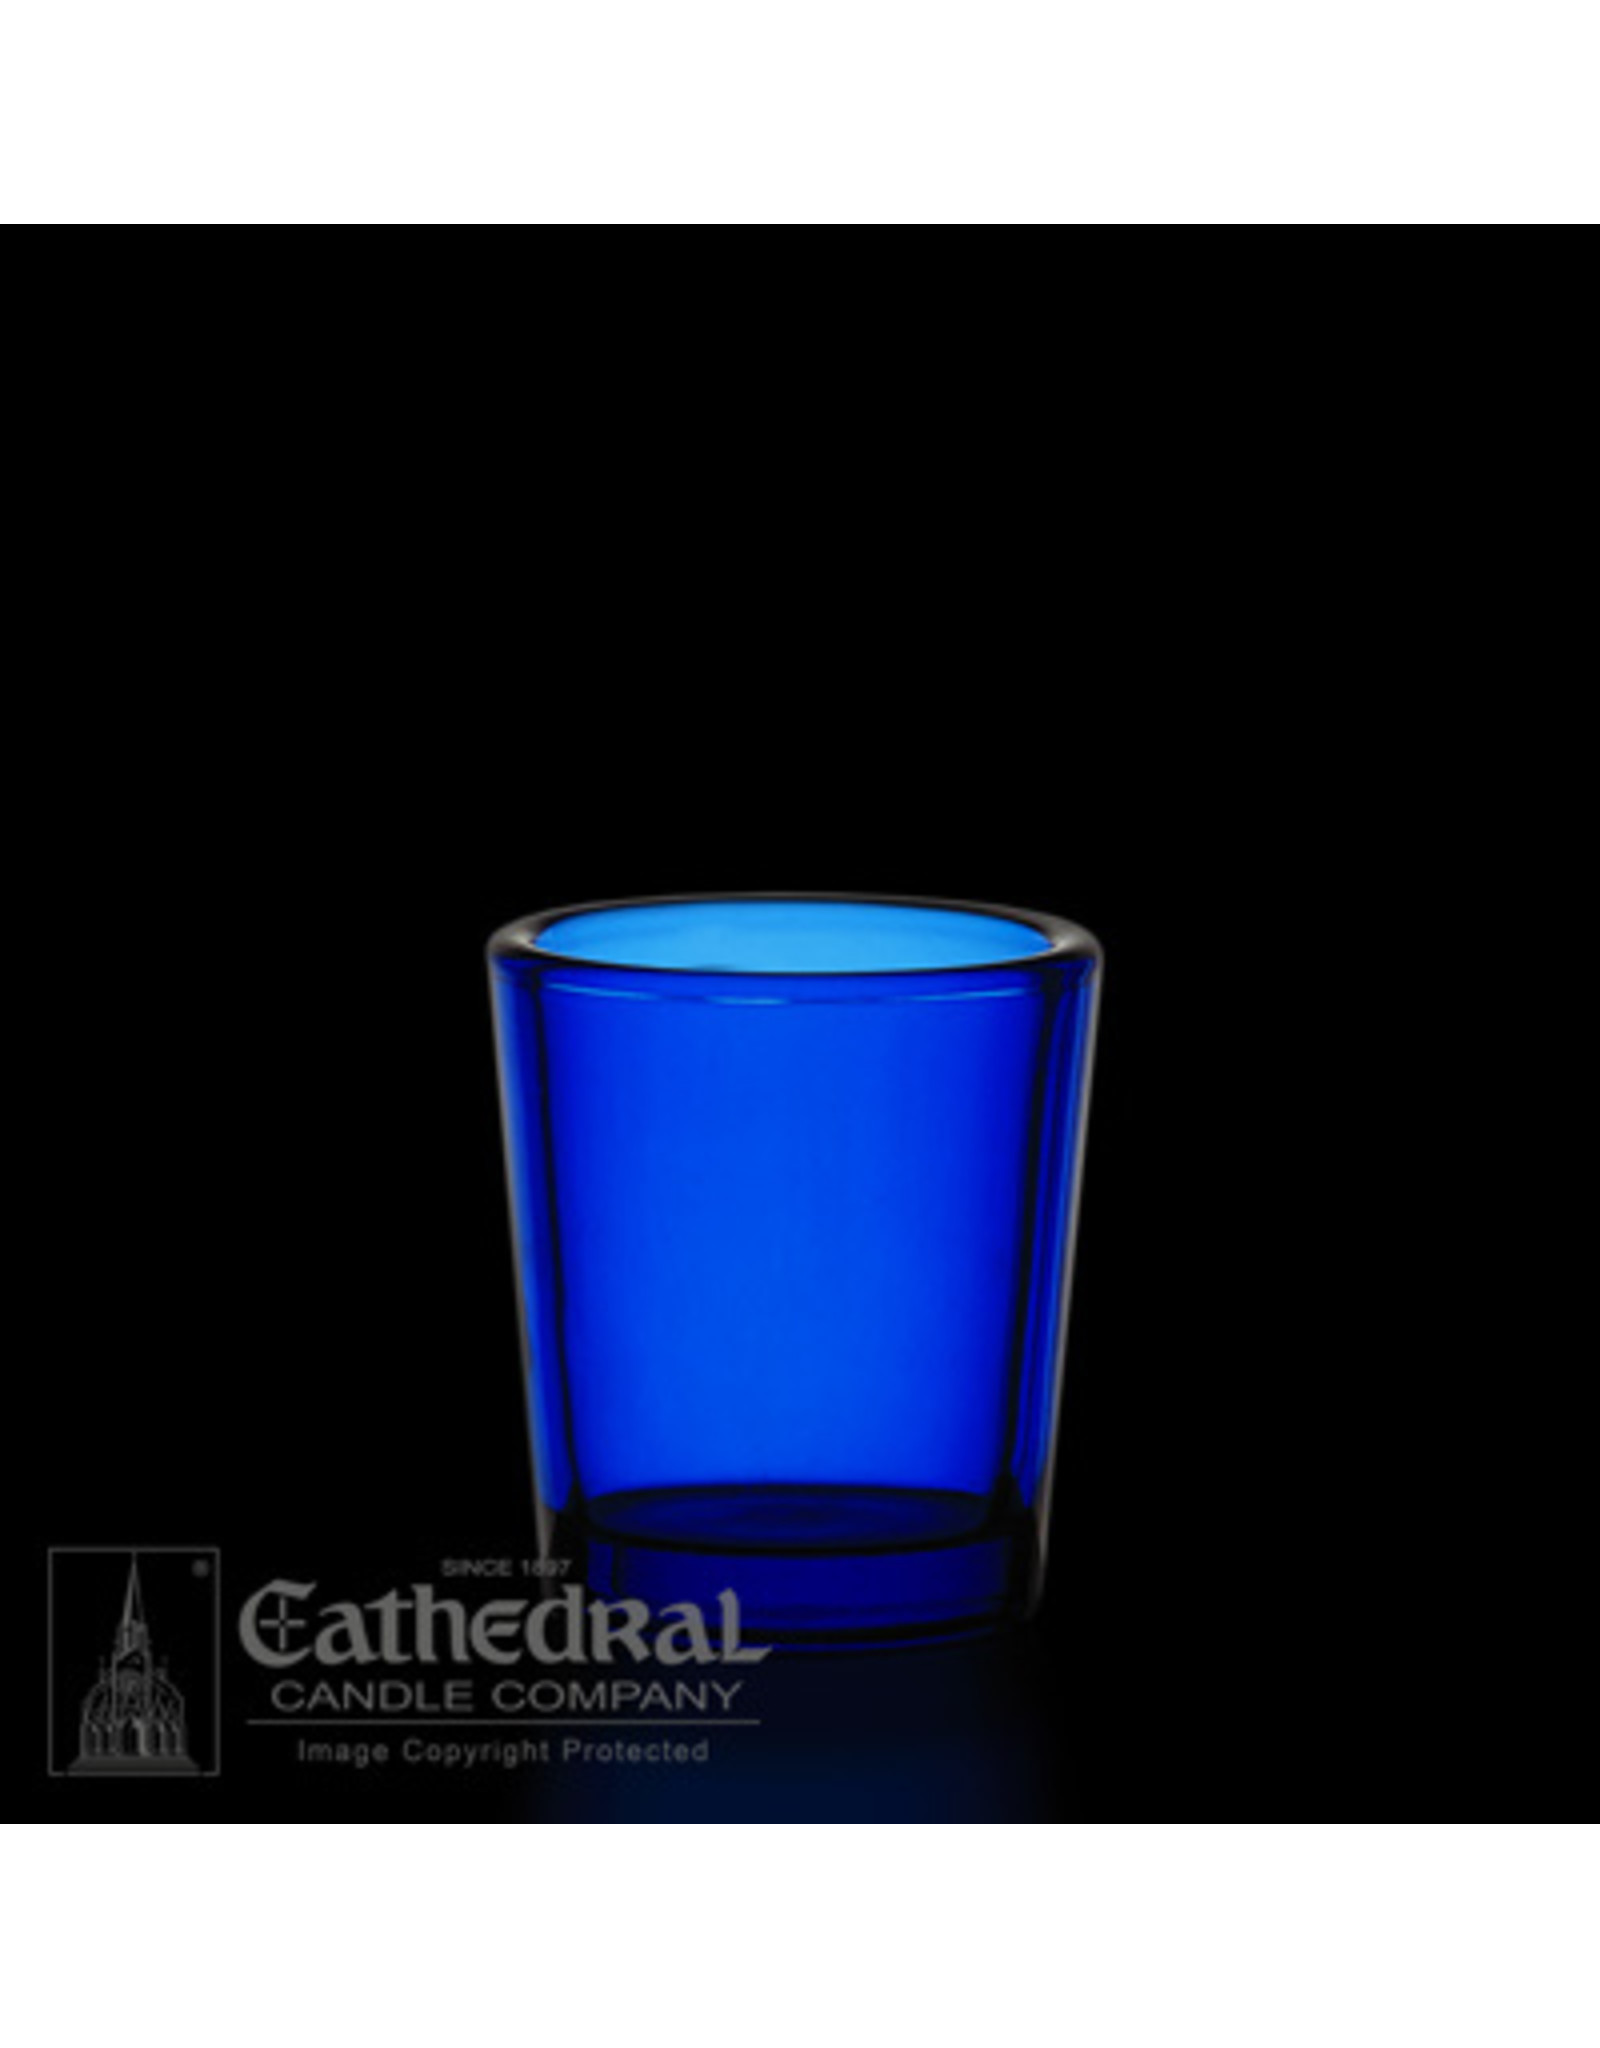 CNDL GLASS VOT 15 HR BLUE (12)